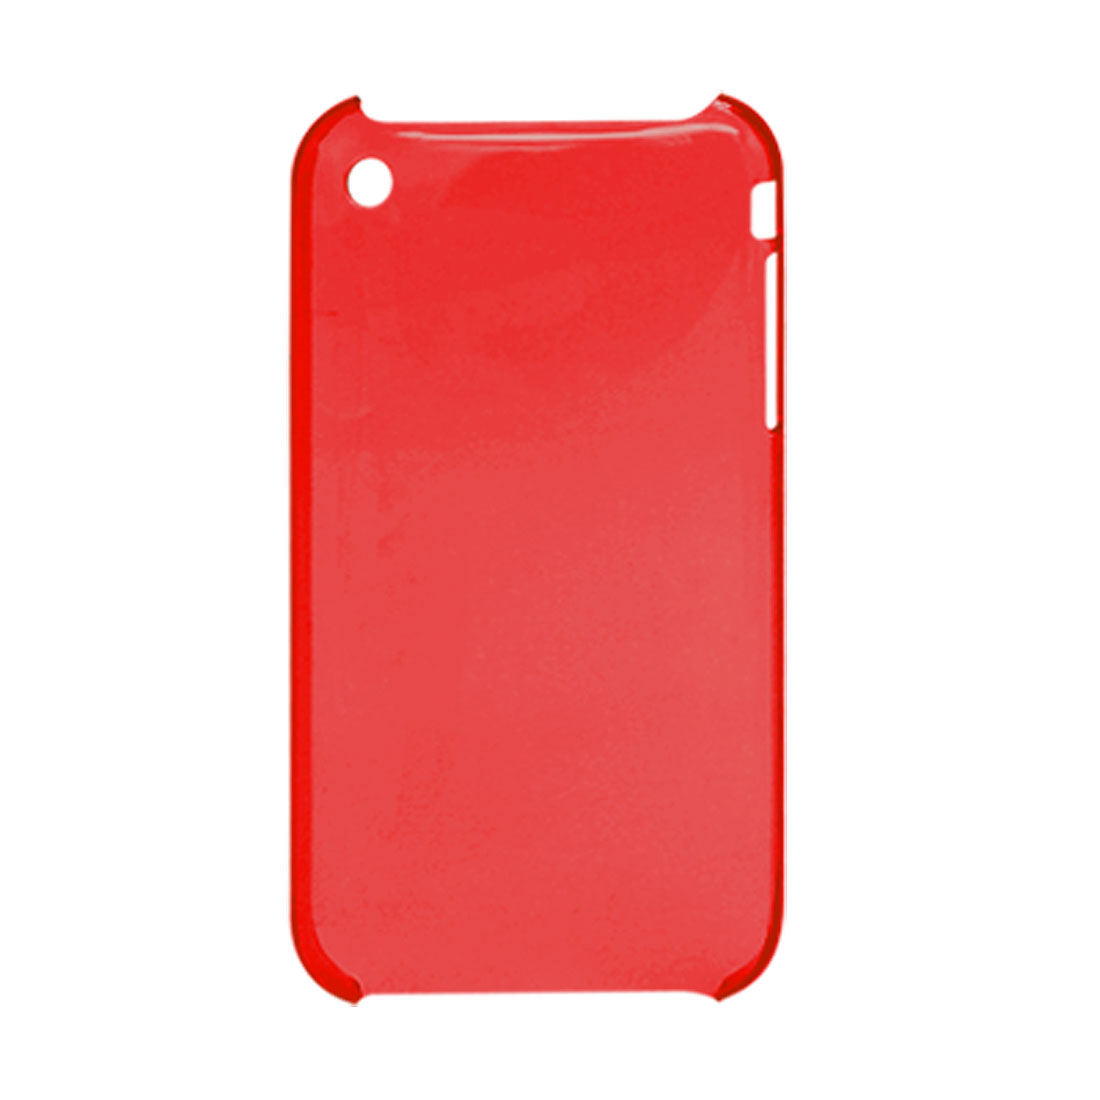 Clear Red Plastic Case Cover Shell for Apple iPhone 3G